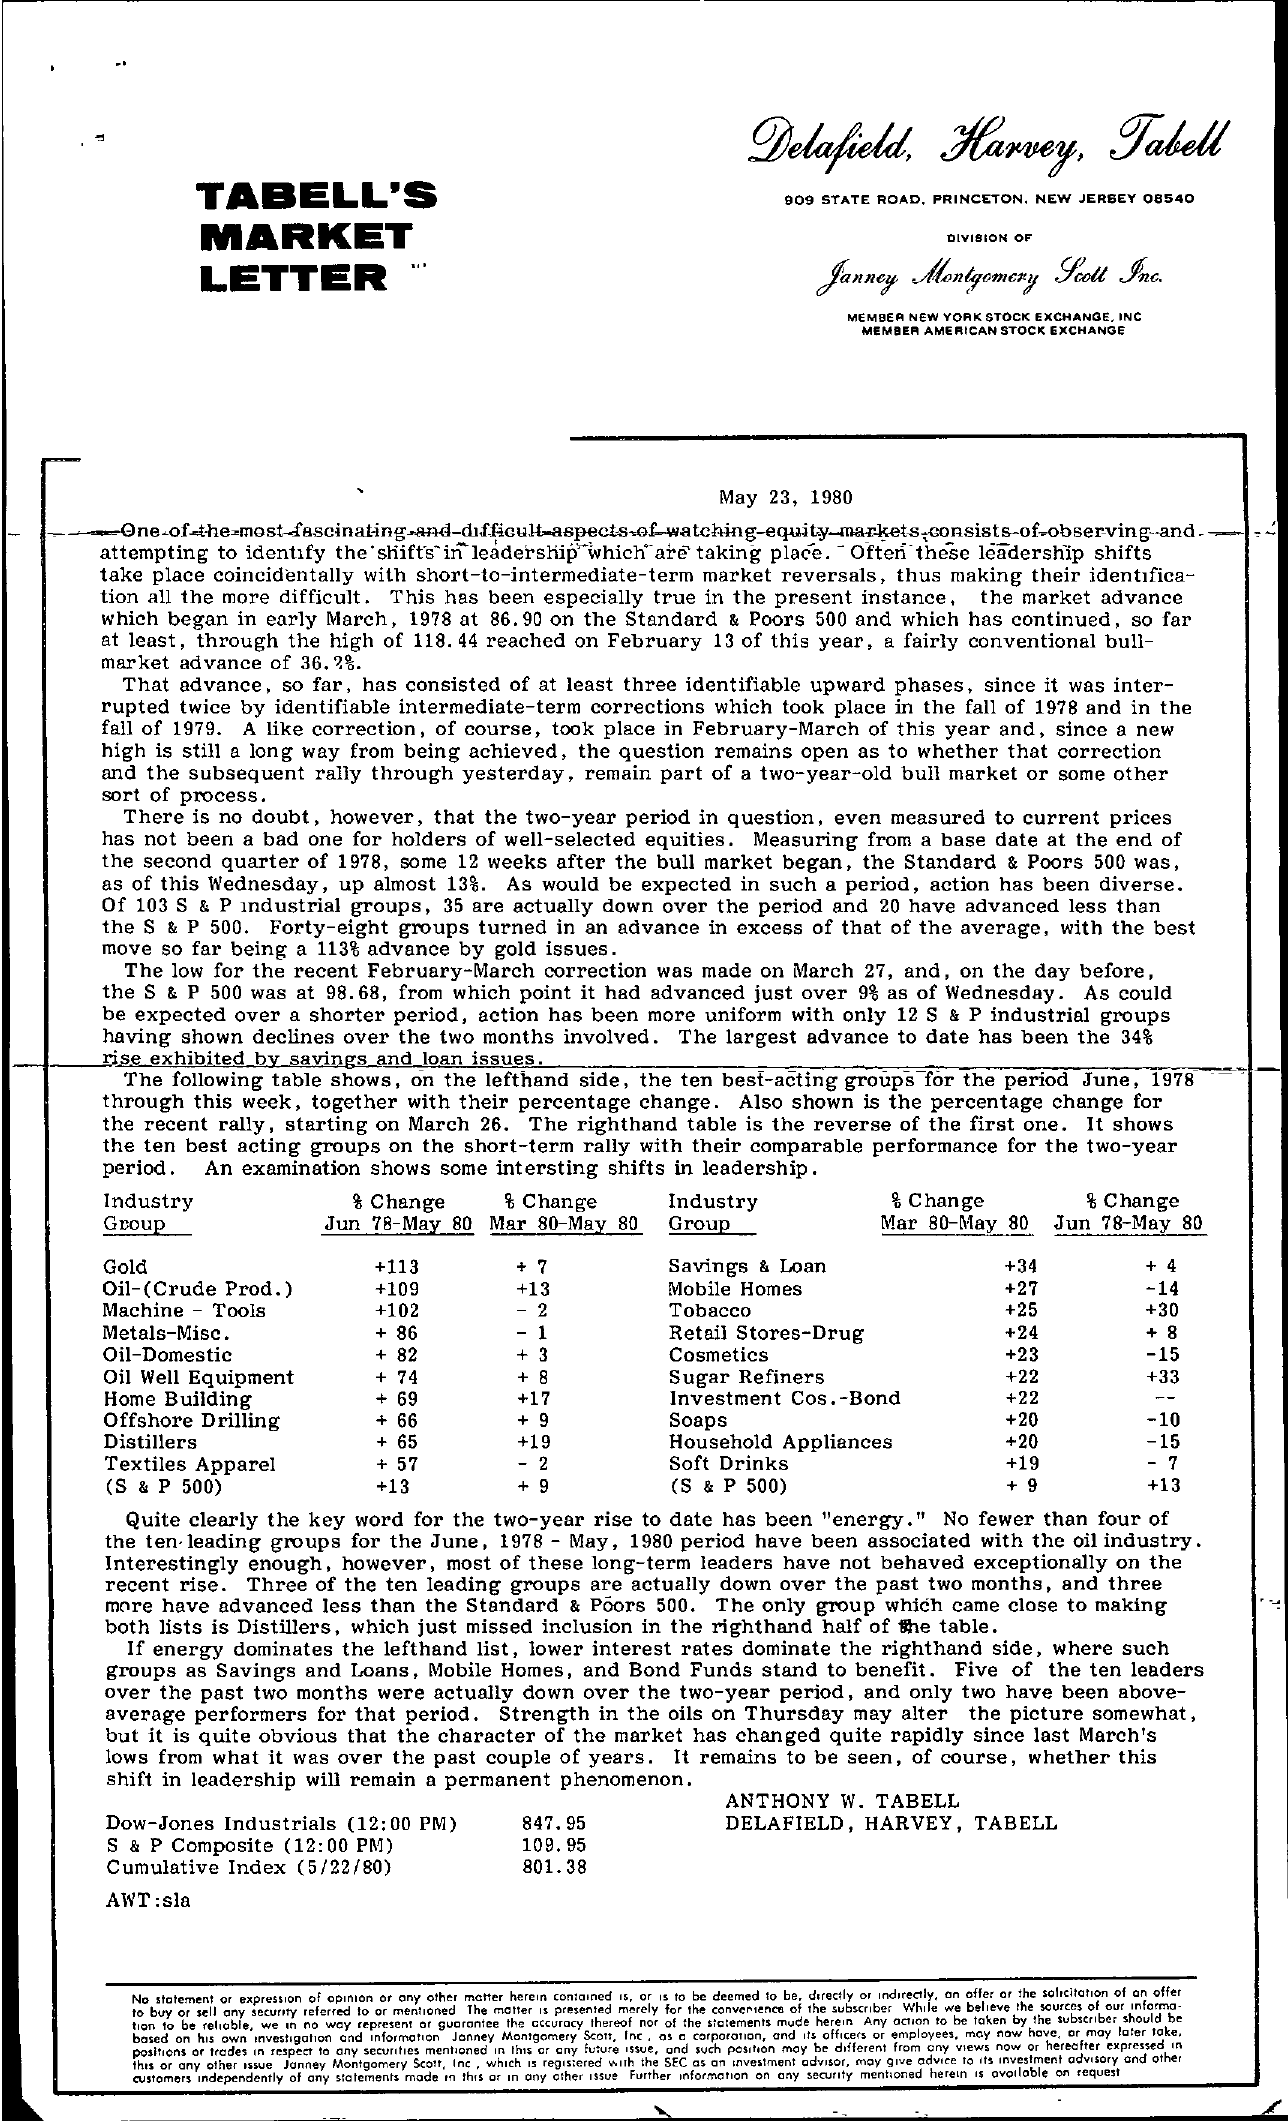 Tabell's Market Letter - May 23, 1980